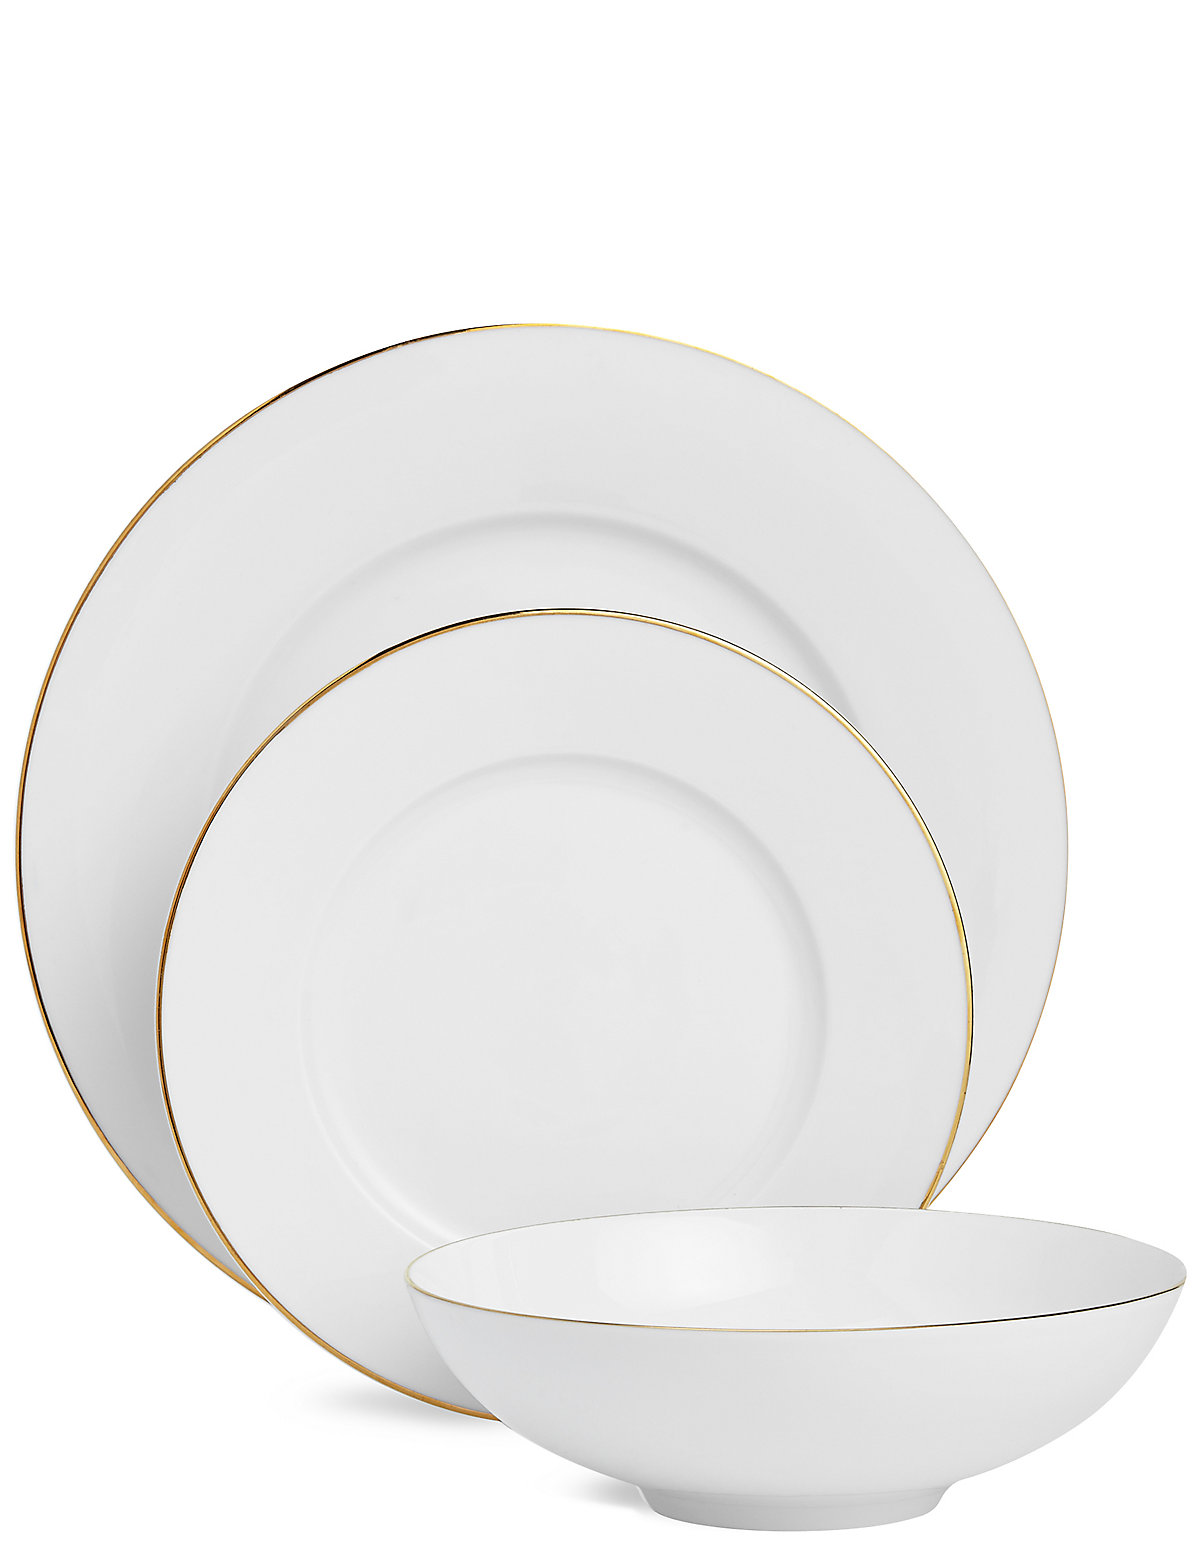 Image of 12 Piece Maxim Gold Dinner Set